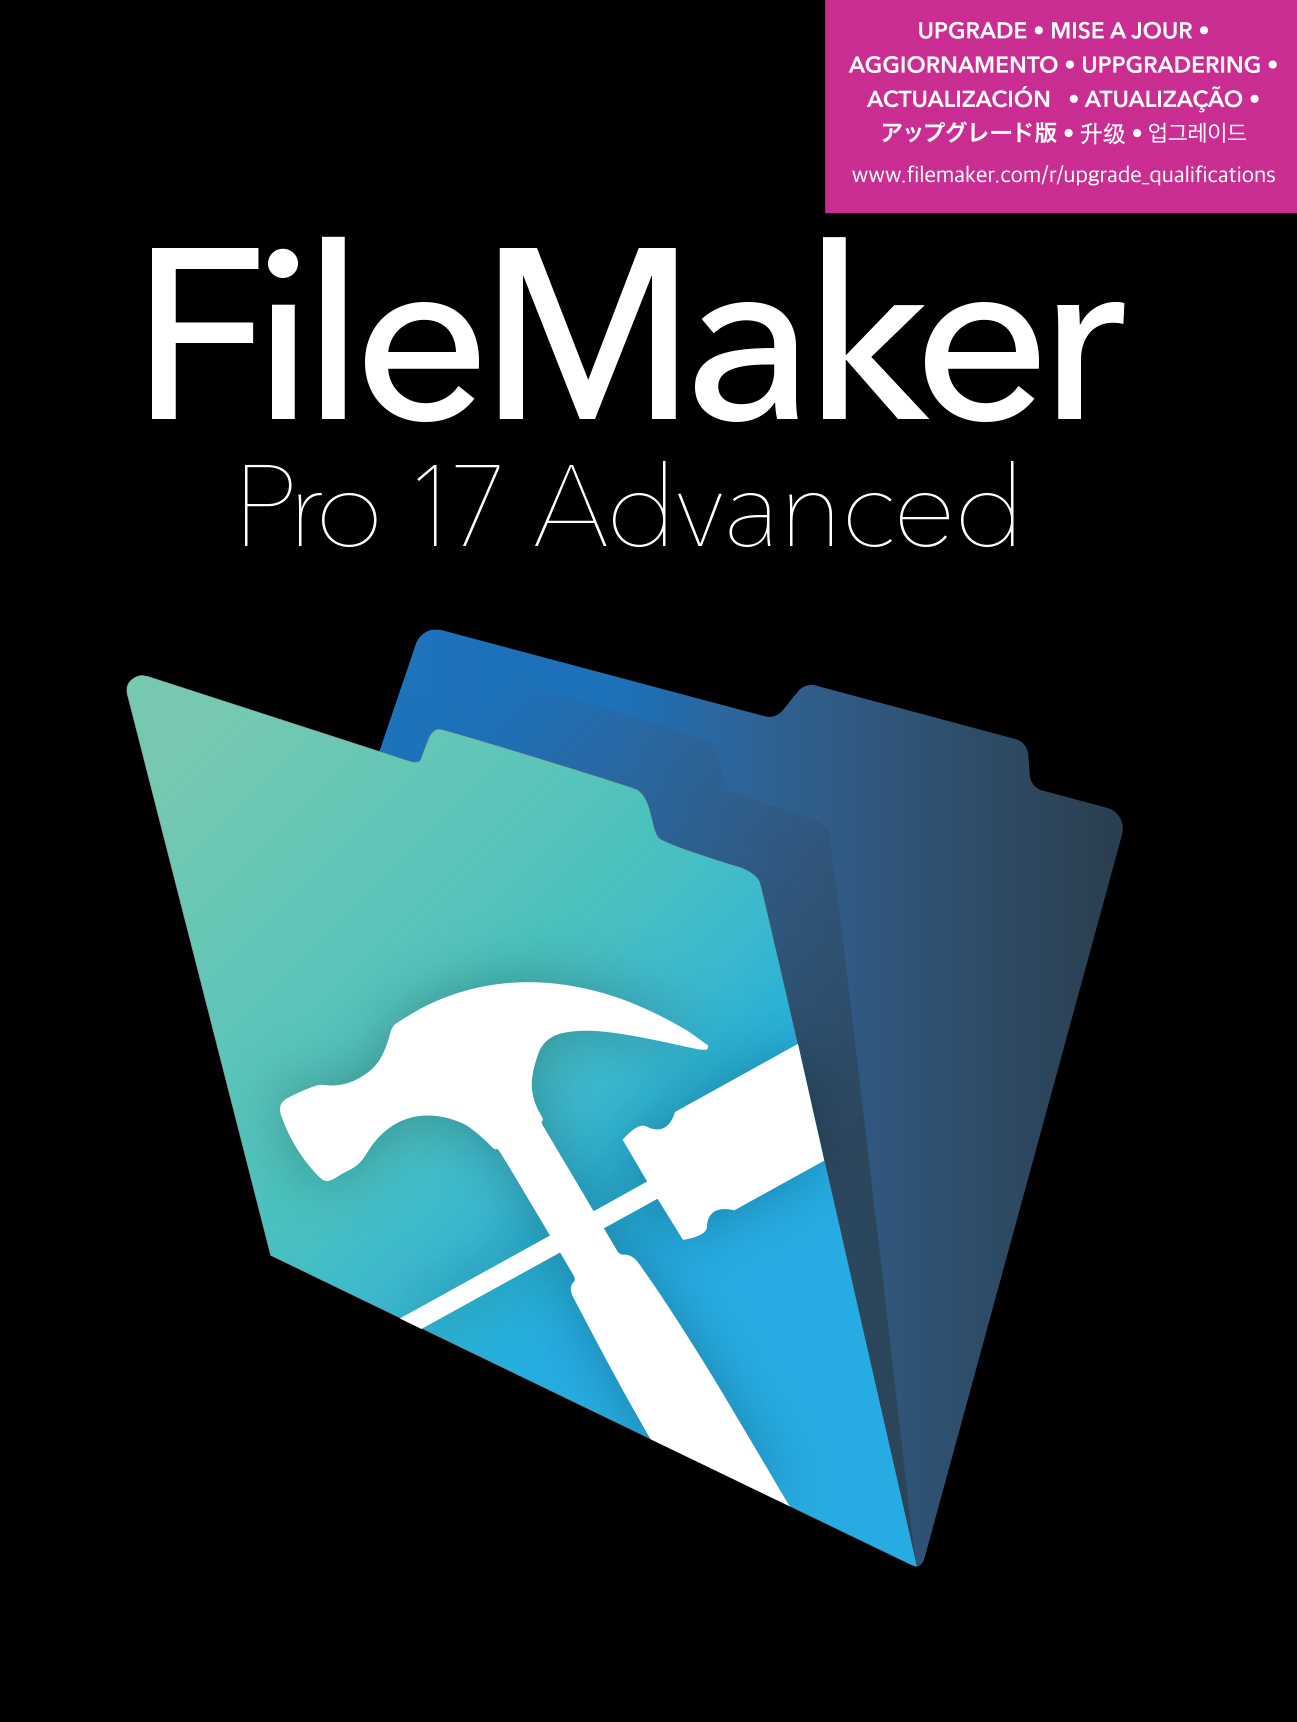 FileMaker Pro 17 Advanced Upgrade Download Mac/Win [Online Code] by FileMaker, Inc. - An Apple Subsidiary